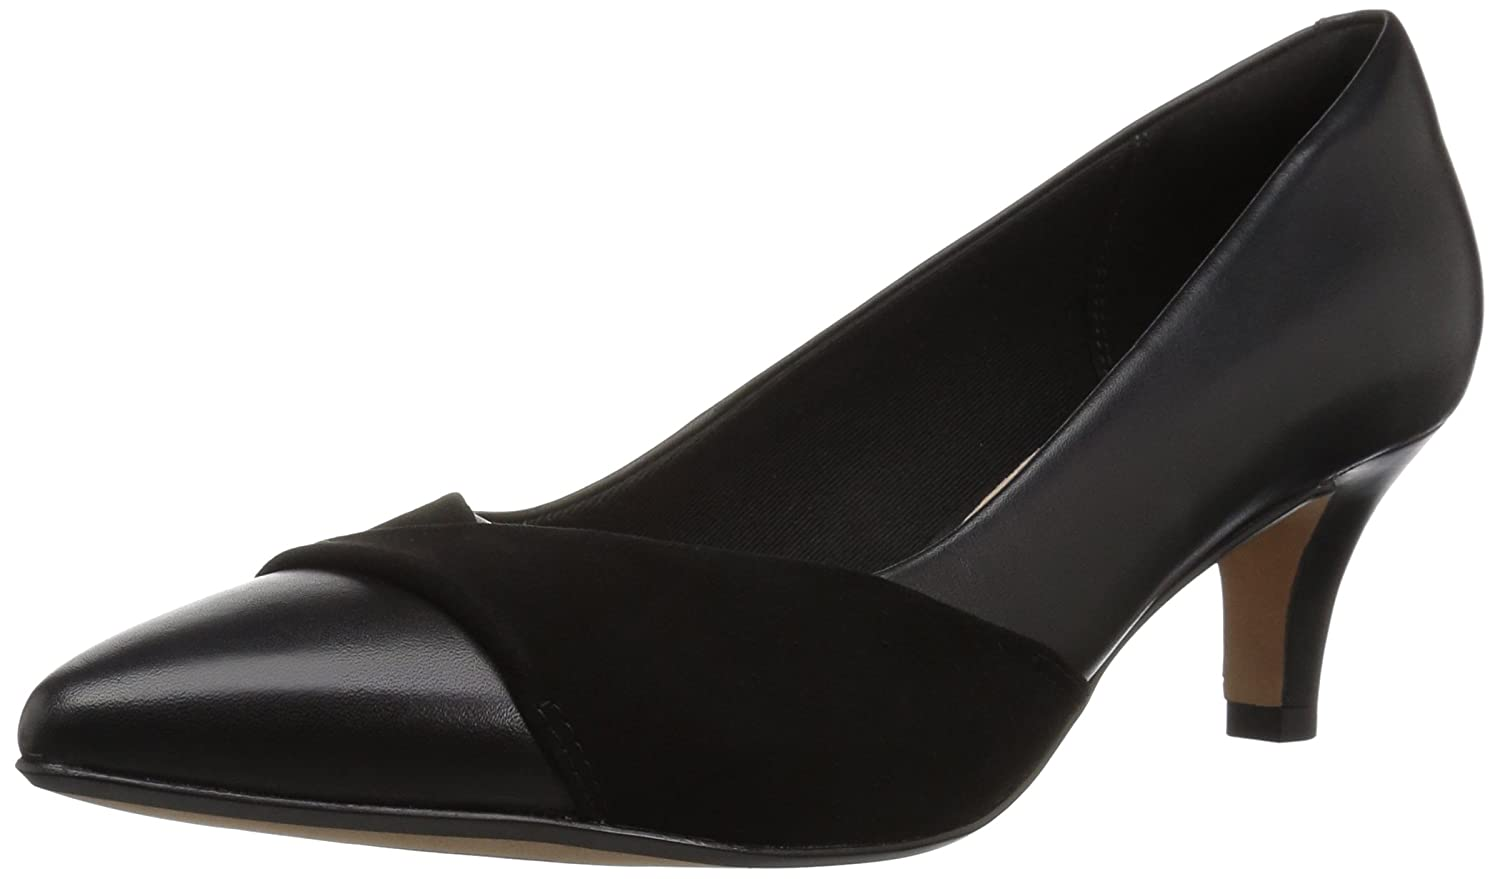 CLARKS Women's Linvale Vena Pump B077Z4YV3M 070 W US|Black Leather/Nubuck Combi